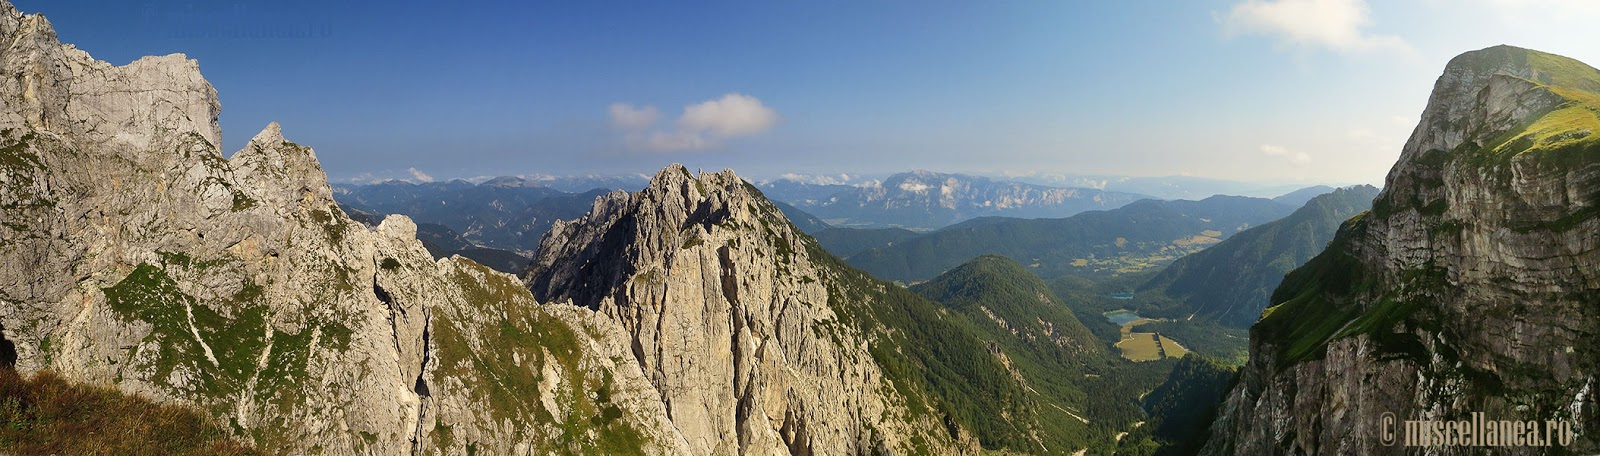 Mangart top of Slovenia